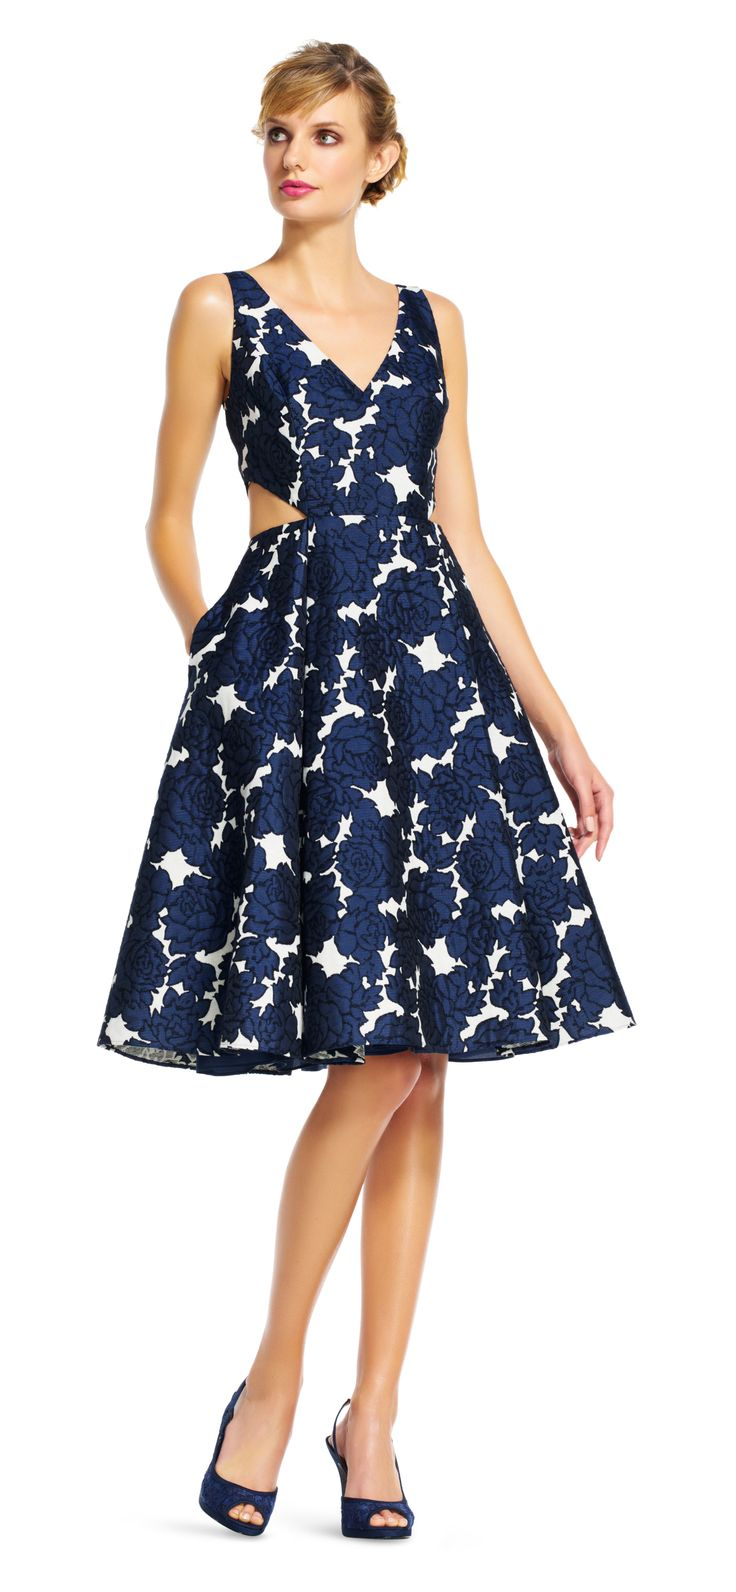 Dark and romantic florals gather on this stunning cocktail dress. Featuring cutout side, a v-neckline, and pockets, this pretty tea length dress will be a hit at your next party. This midi dress will shine paired from day to night with neutral or metallic peep toe pumps and a beaded handbag.